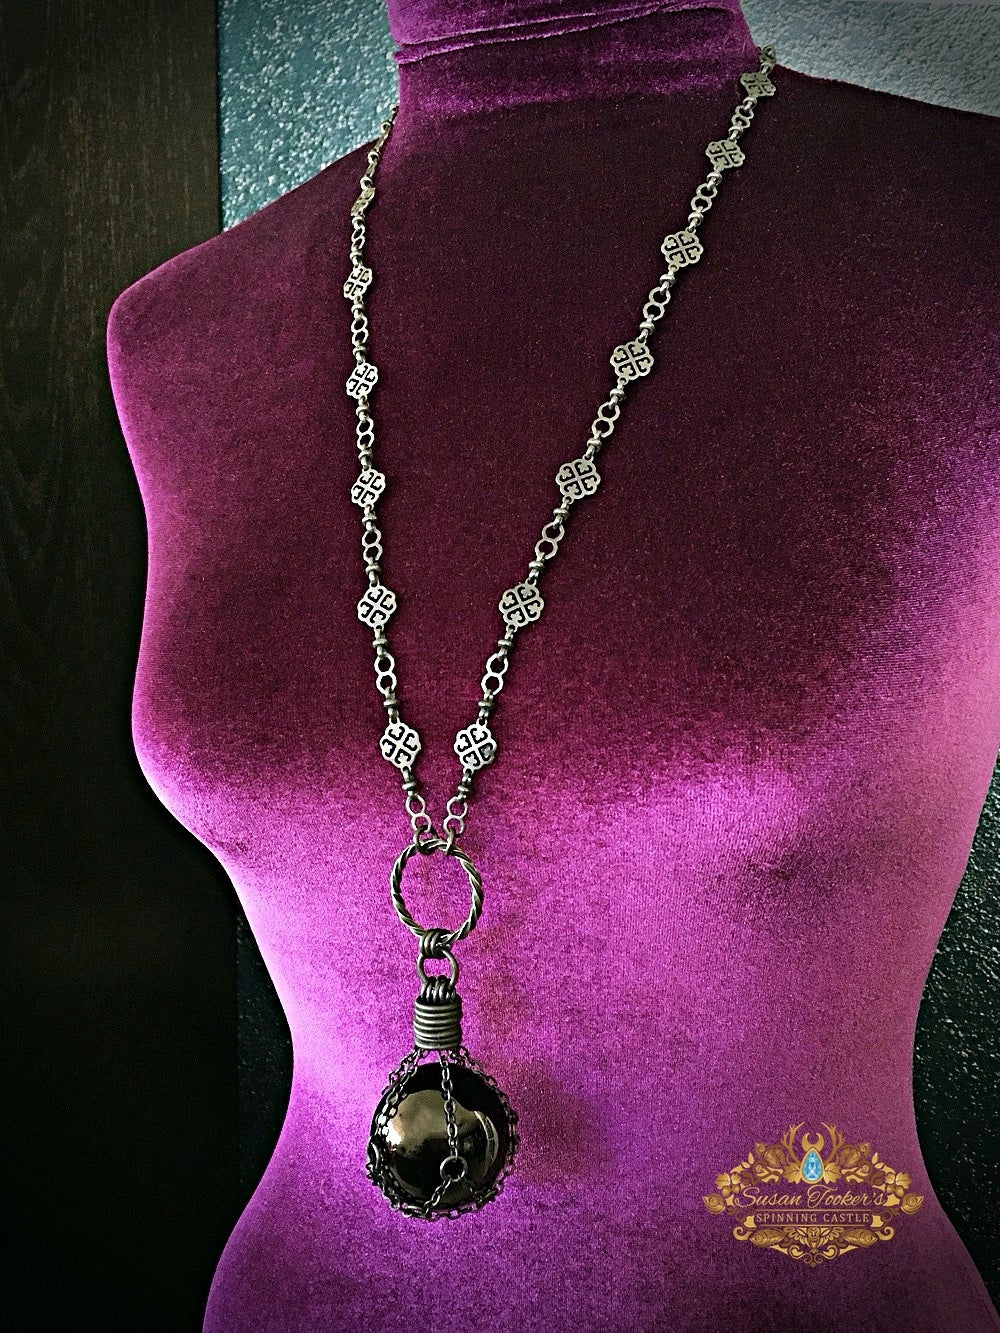 Image of THE DARK MOON - Black Obsidian Crystal Ball Necklace Witch Talisman Gothic Gemstone Sphere